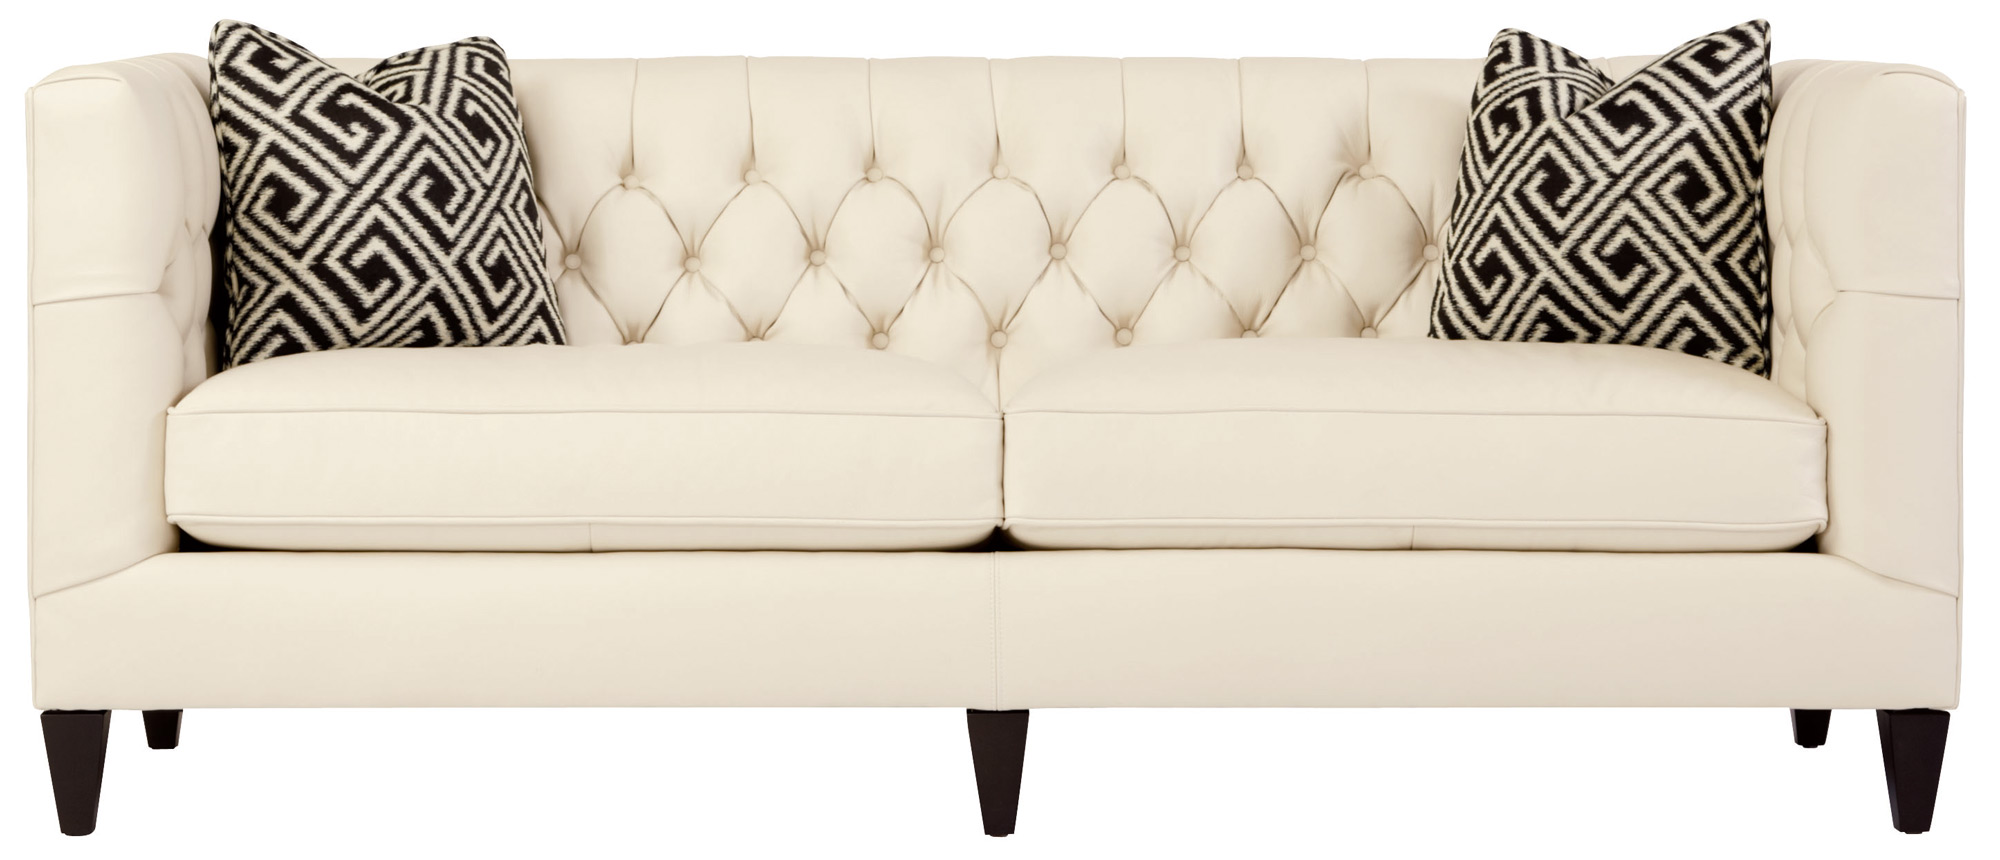 Bernhart sofa living room bernhardt thesofa for Bernhardt furniture